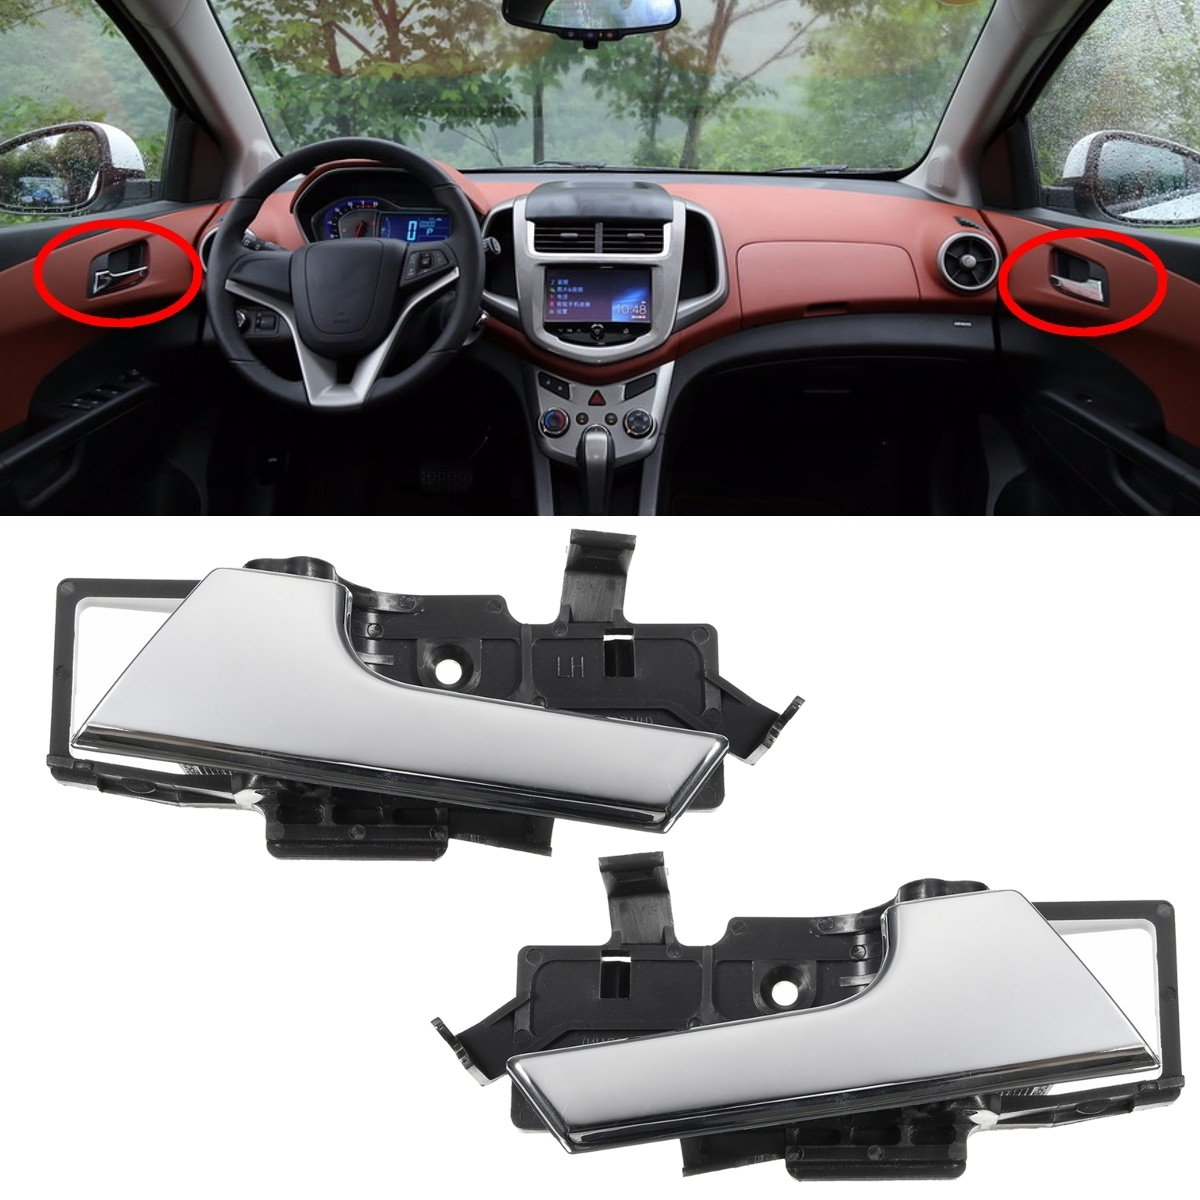 96462710 Car Interior Door Handle Right Left For Chevrolet Aveo 2007 2008 2009 2010 2011 Aveo5 For Pontiac G3 Car Styling Interior Door Handles Aliexpress